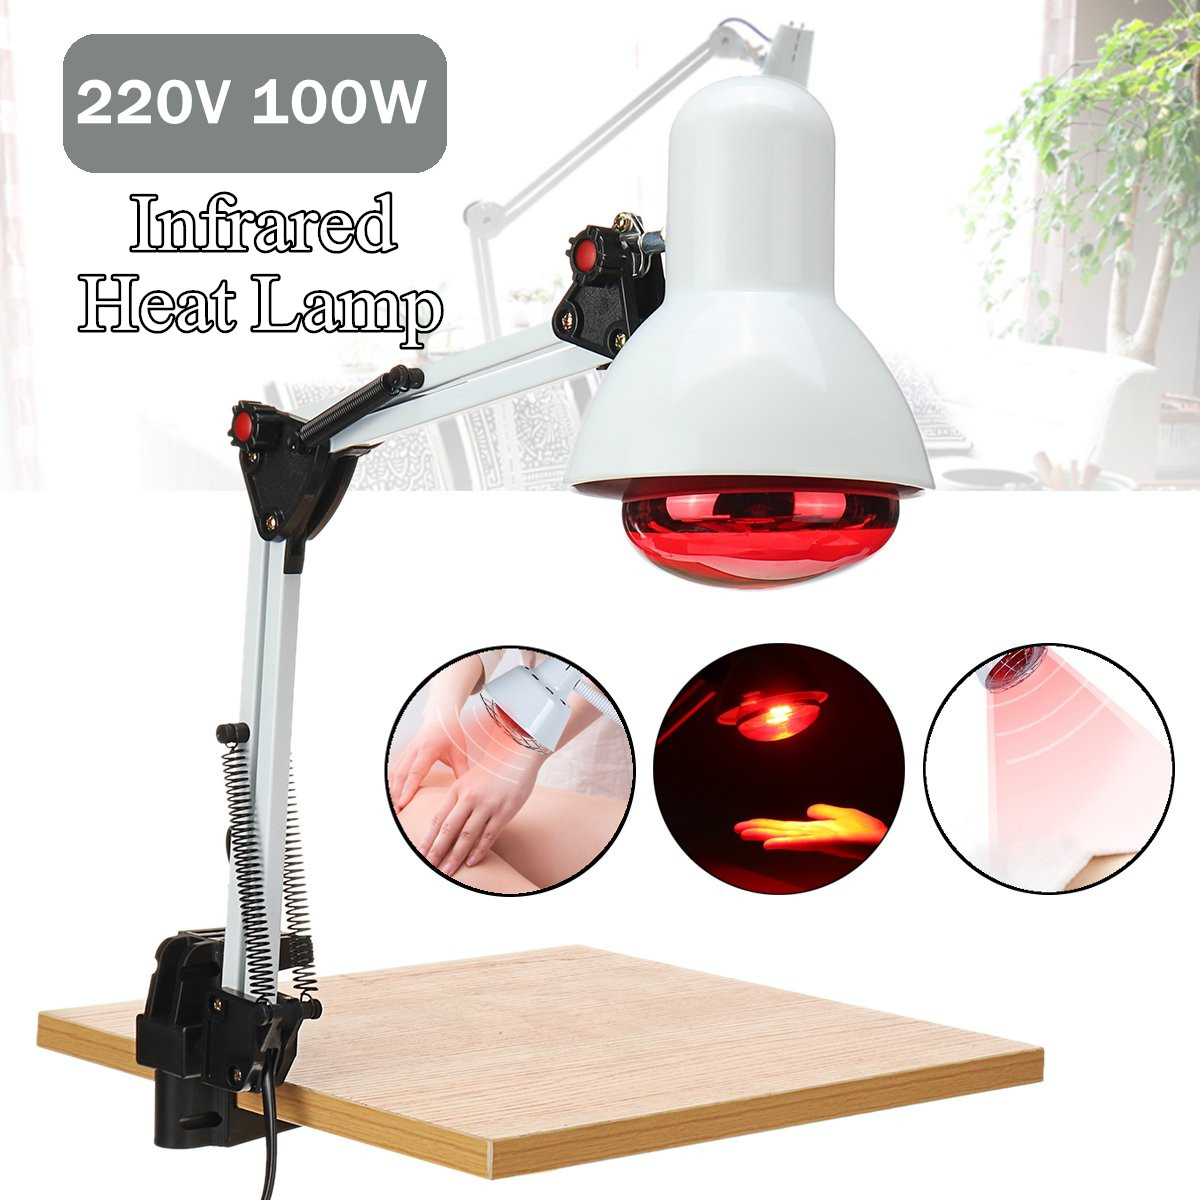 220V 100W E27 Infrared Physiotherapy Explosion proof Lamp Heater for Muscle Pain Cold Relief Light Therapy Infra Care Massage